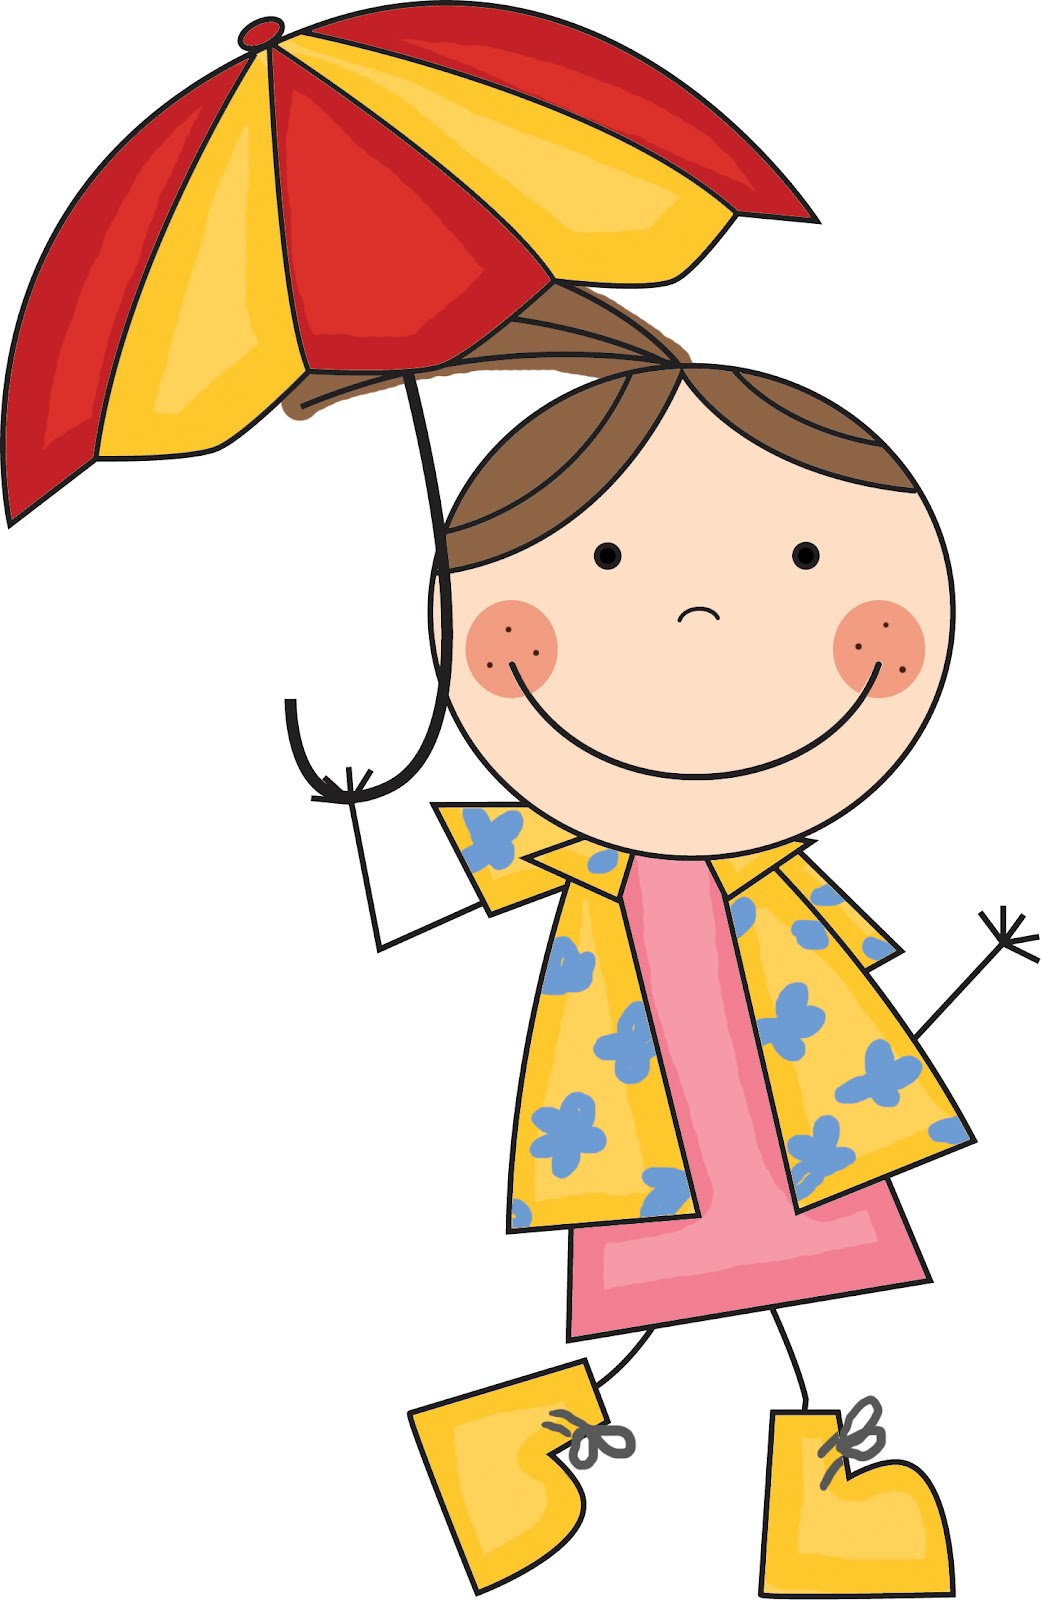 girl umbrella clipart 20 free Cliparts | Download images ...